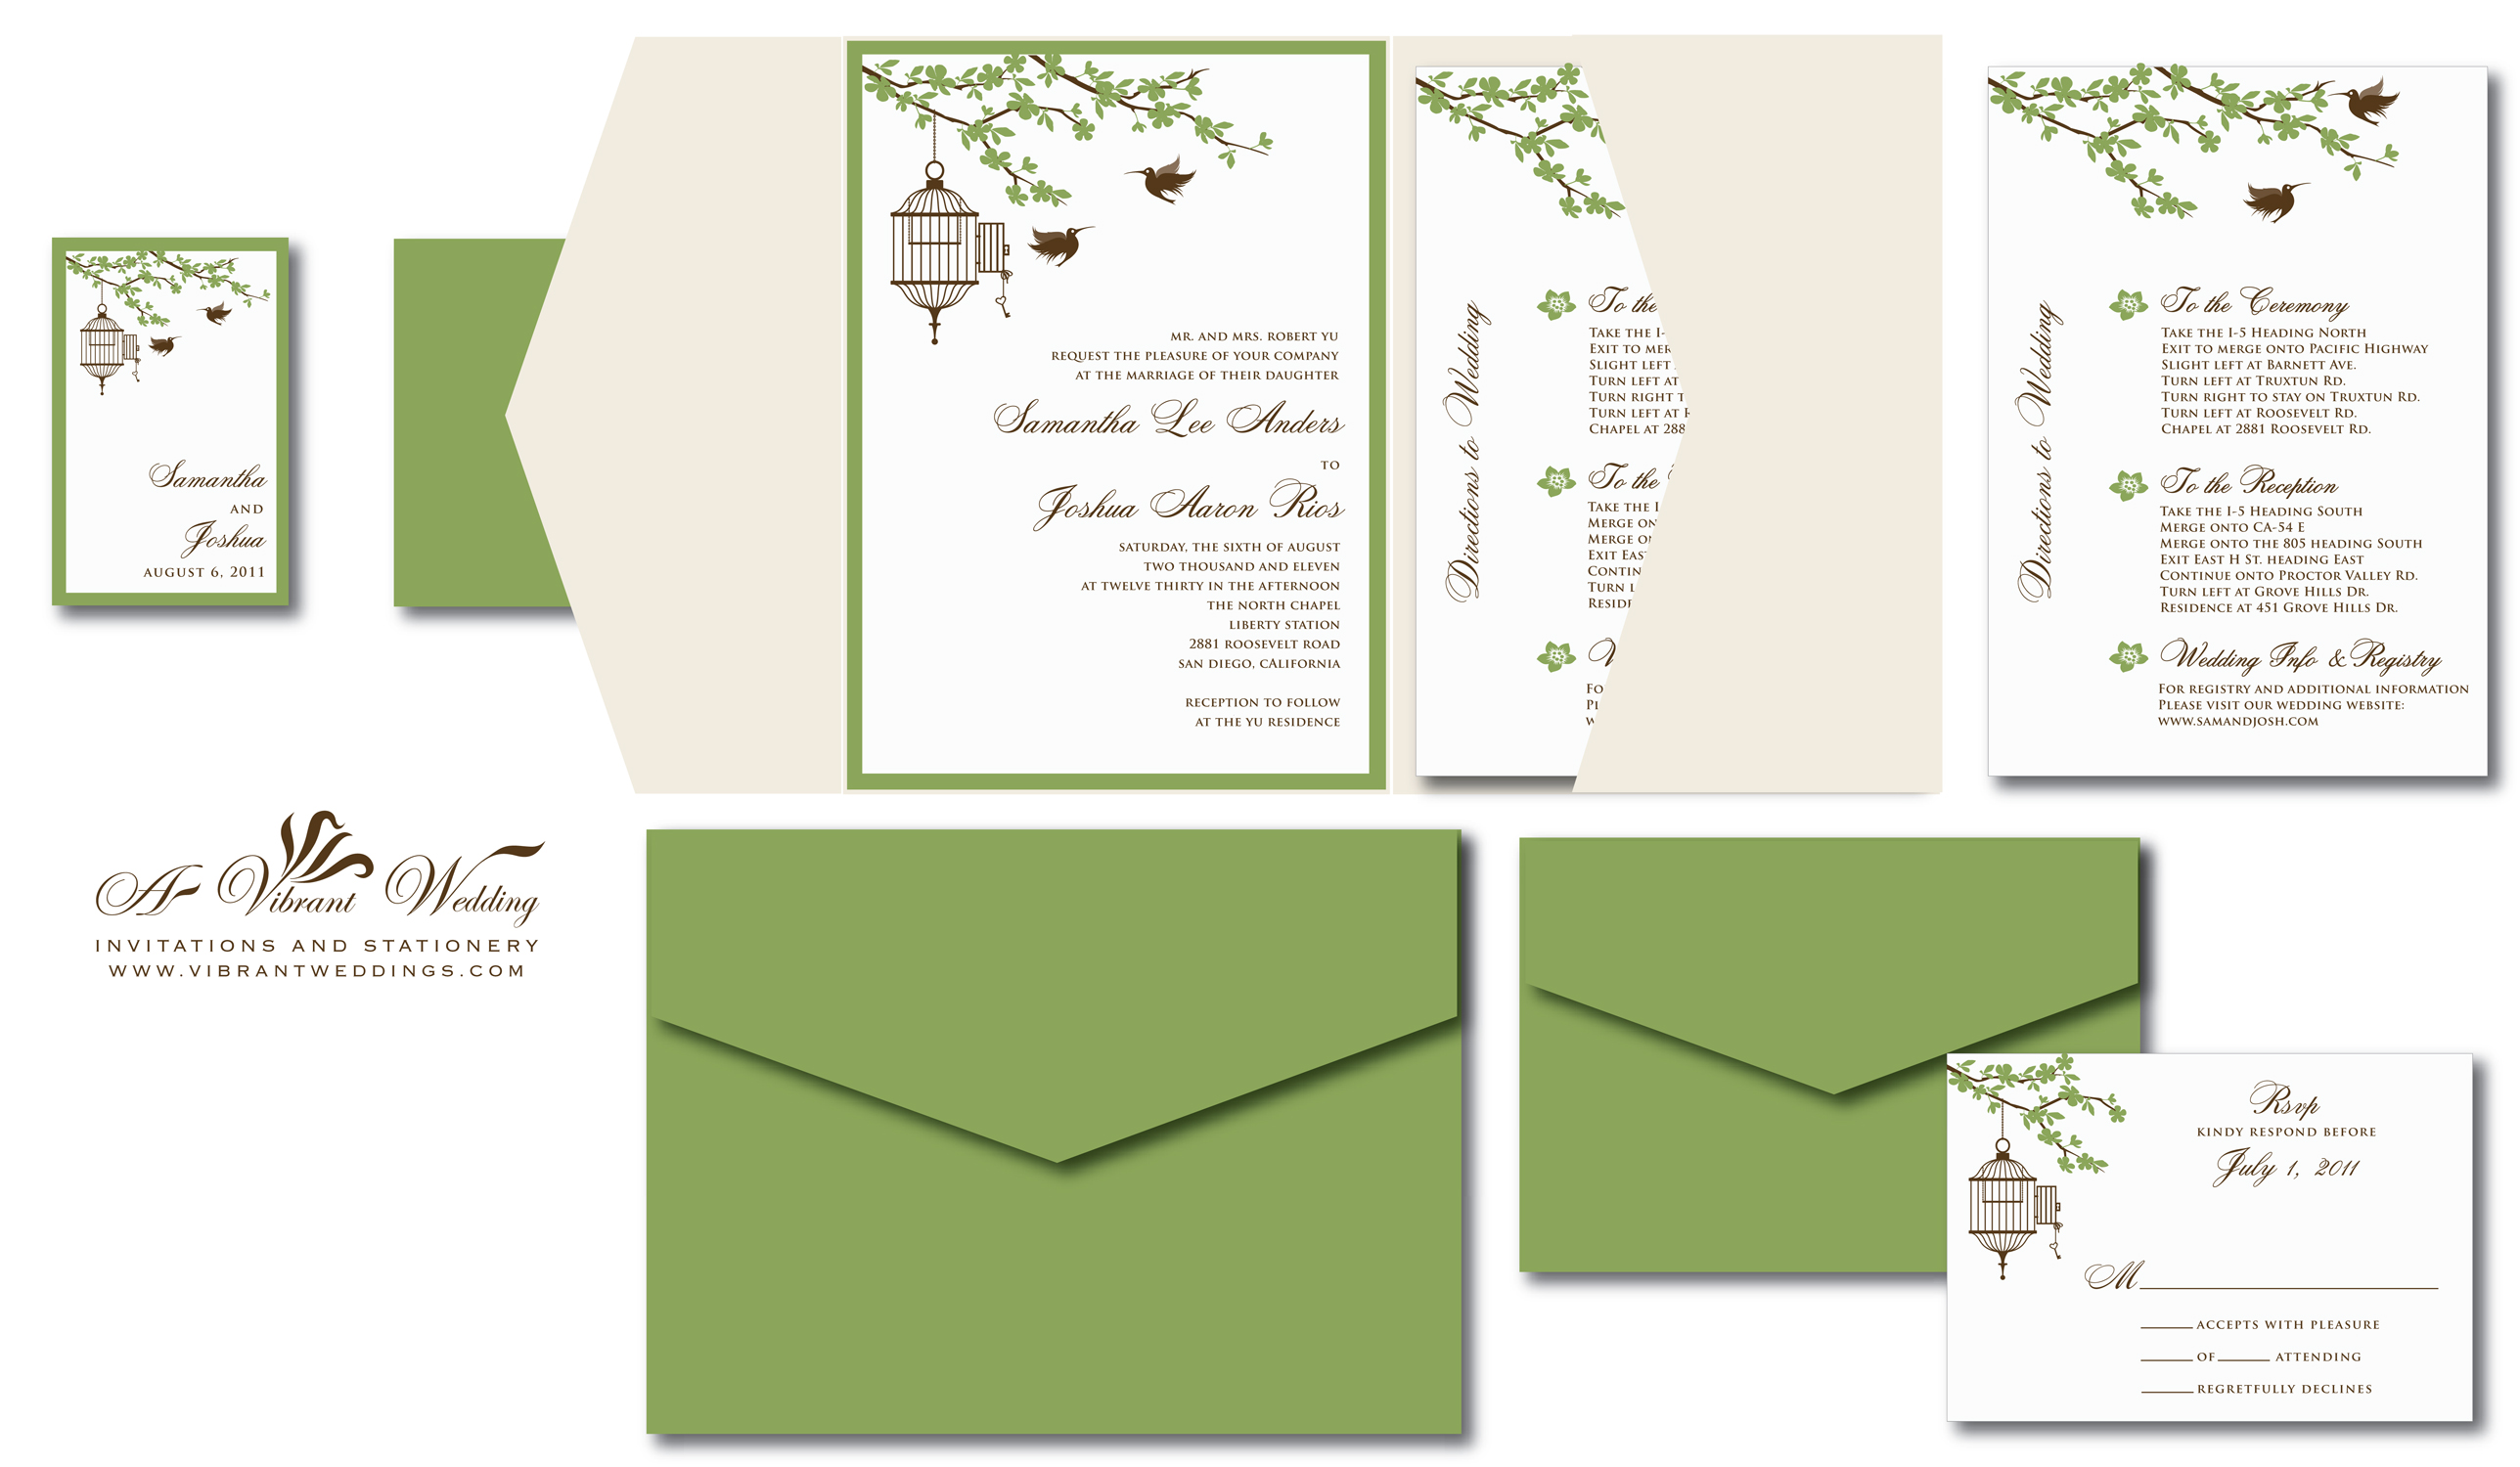 Bird Cage And Humming Birds Wedding Invitation   Sage Green, Champagne And  Ivory